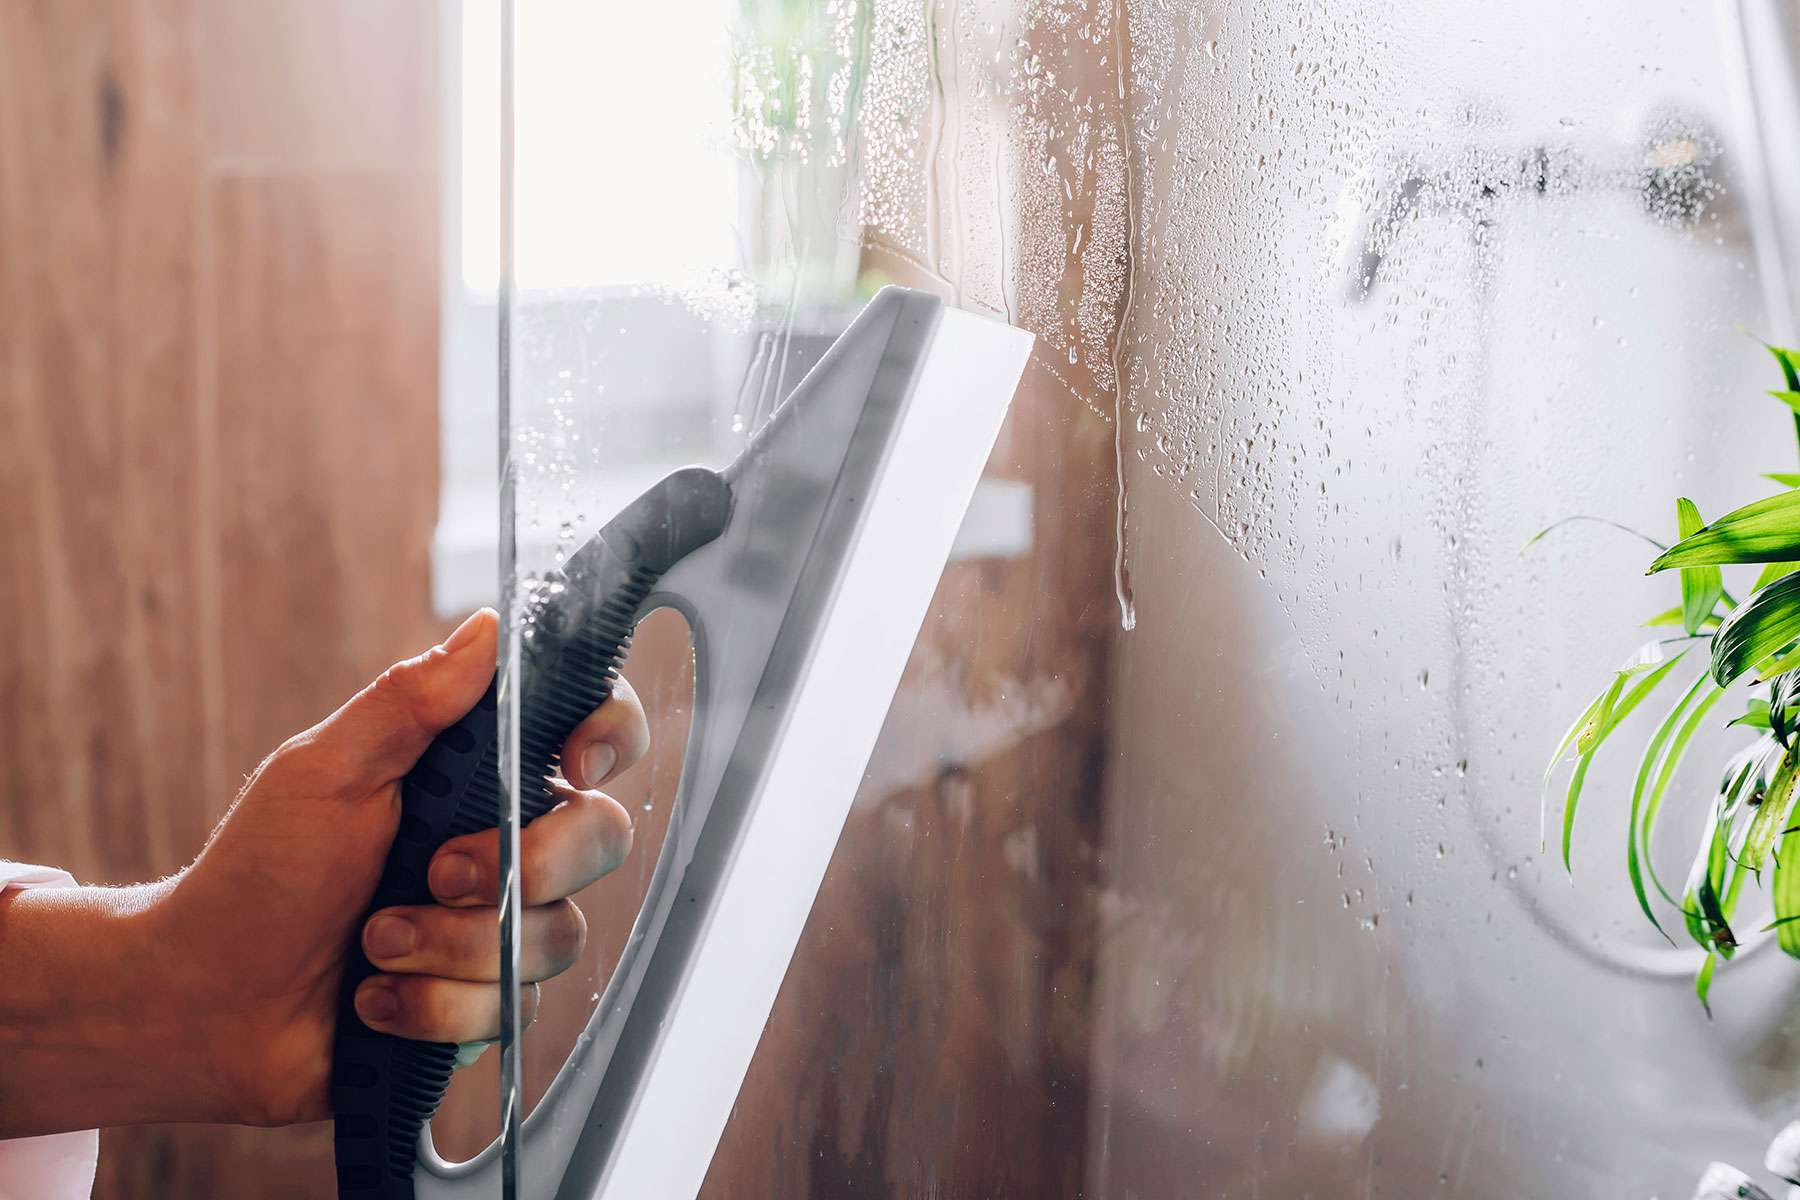 Squeegee passing over glass shower door to remove water drops